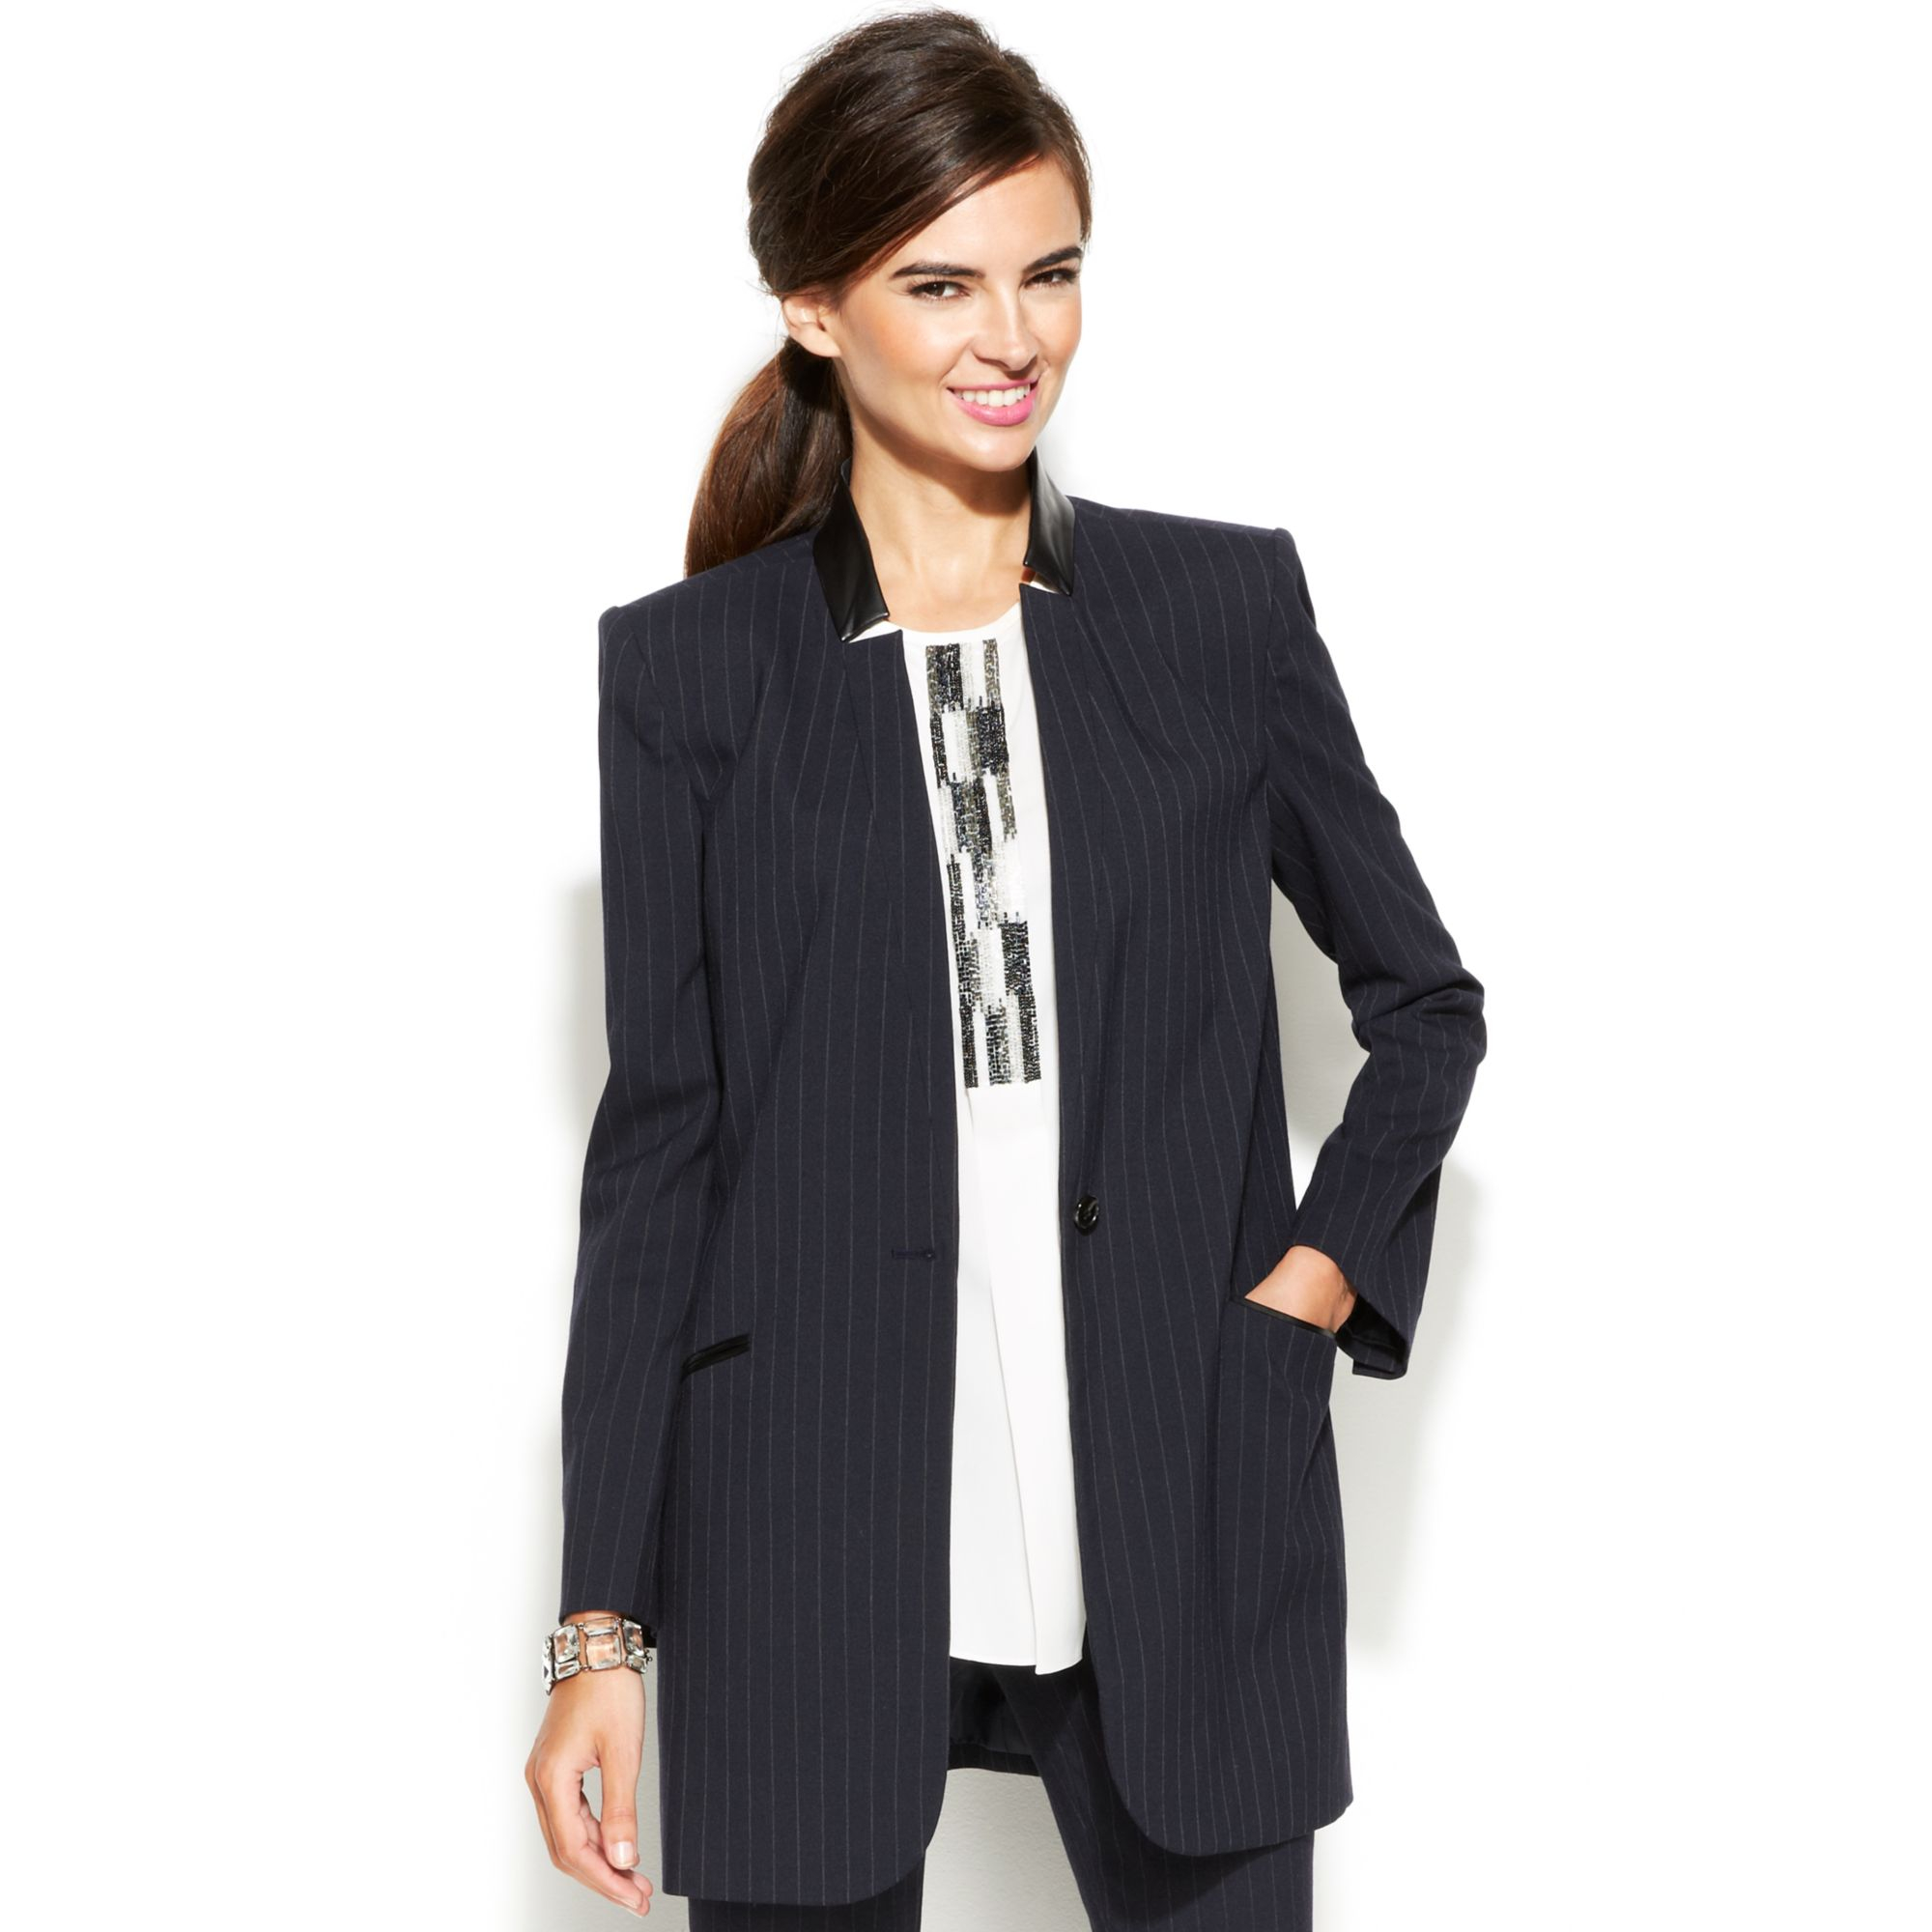 Our womens boyfriend blazers offer a long, soft silhouette, without the tailored look that a classic blazer is known for. This relaxed look is perfect for nights out, date night, or even shopping with your friends.